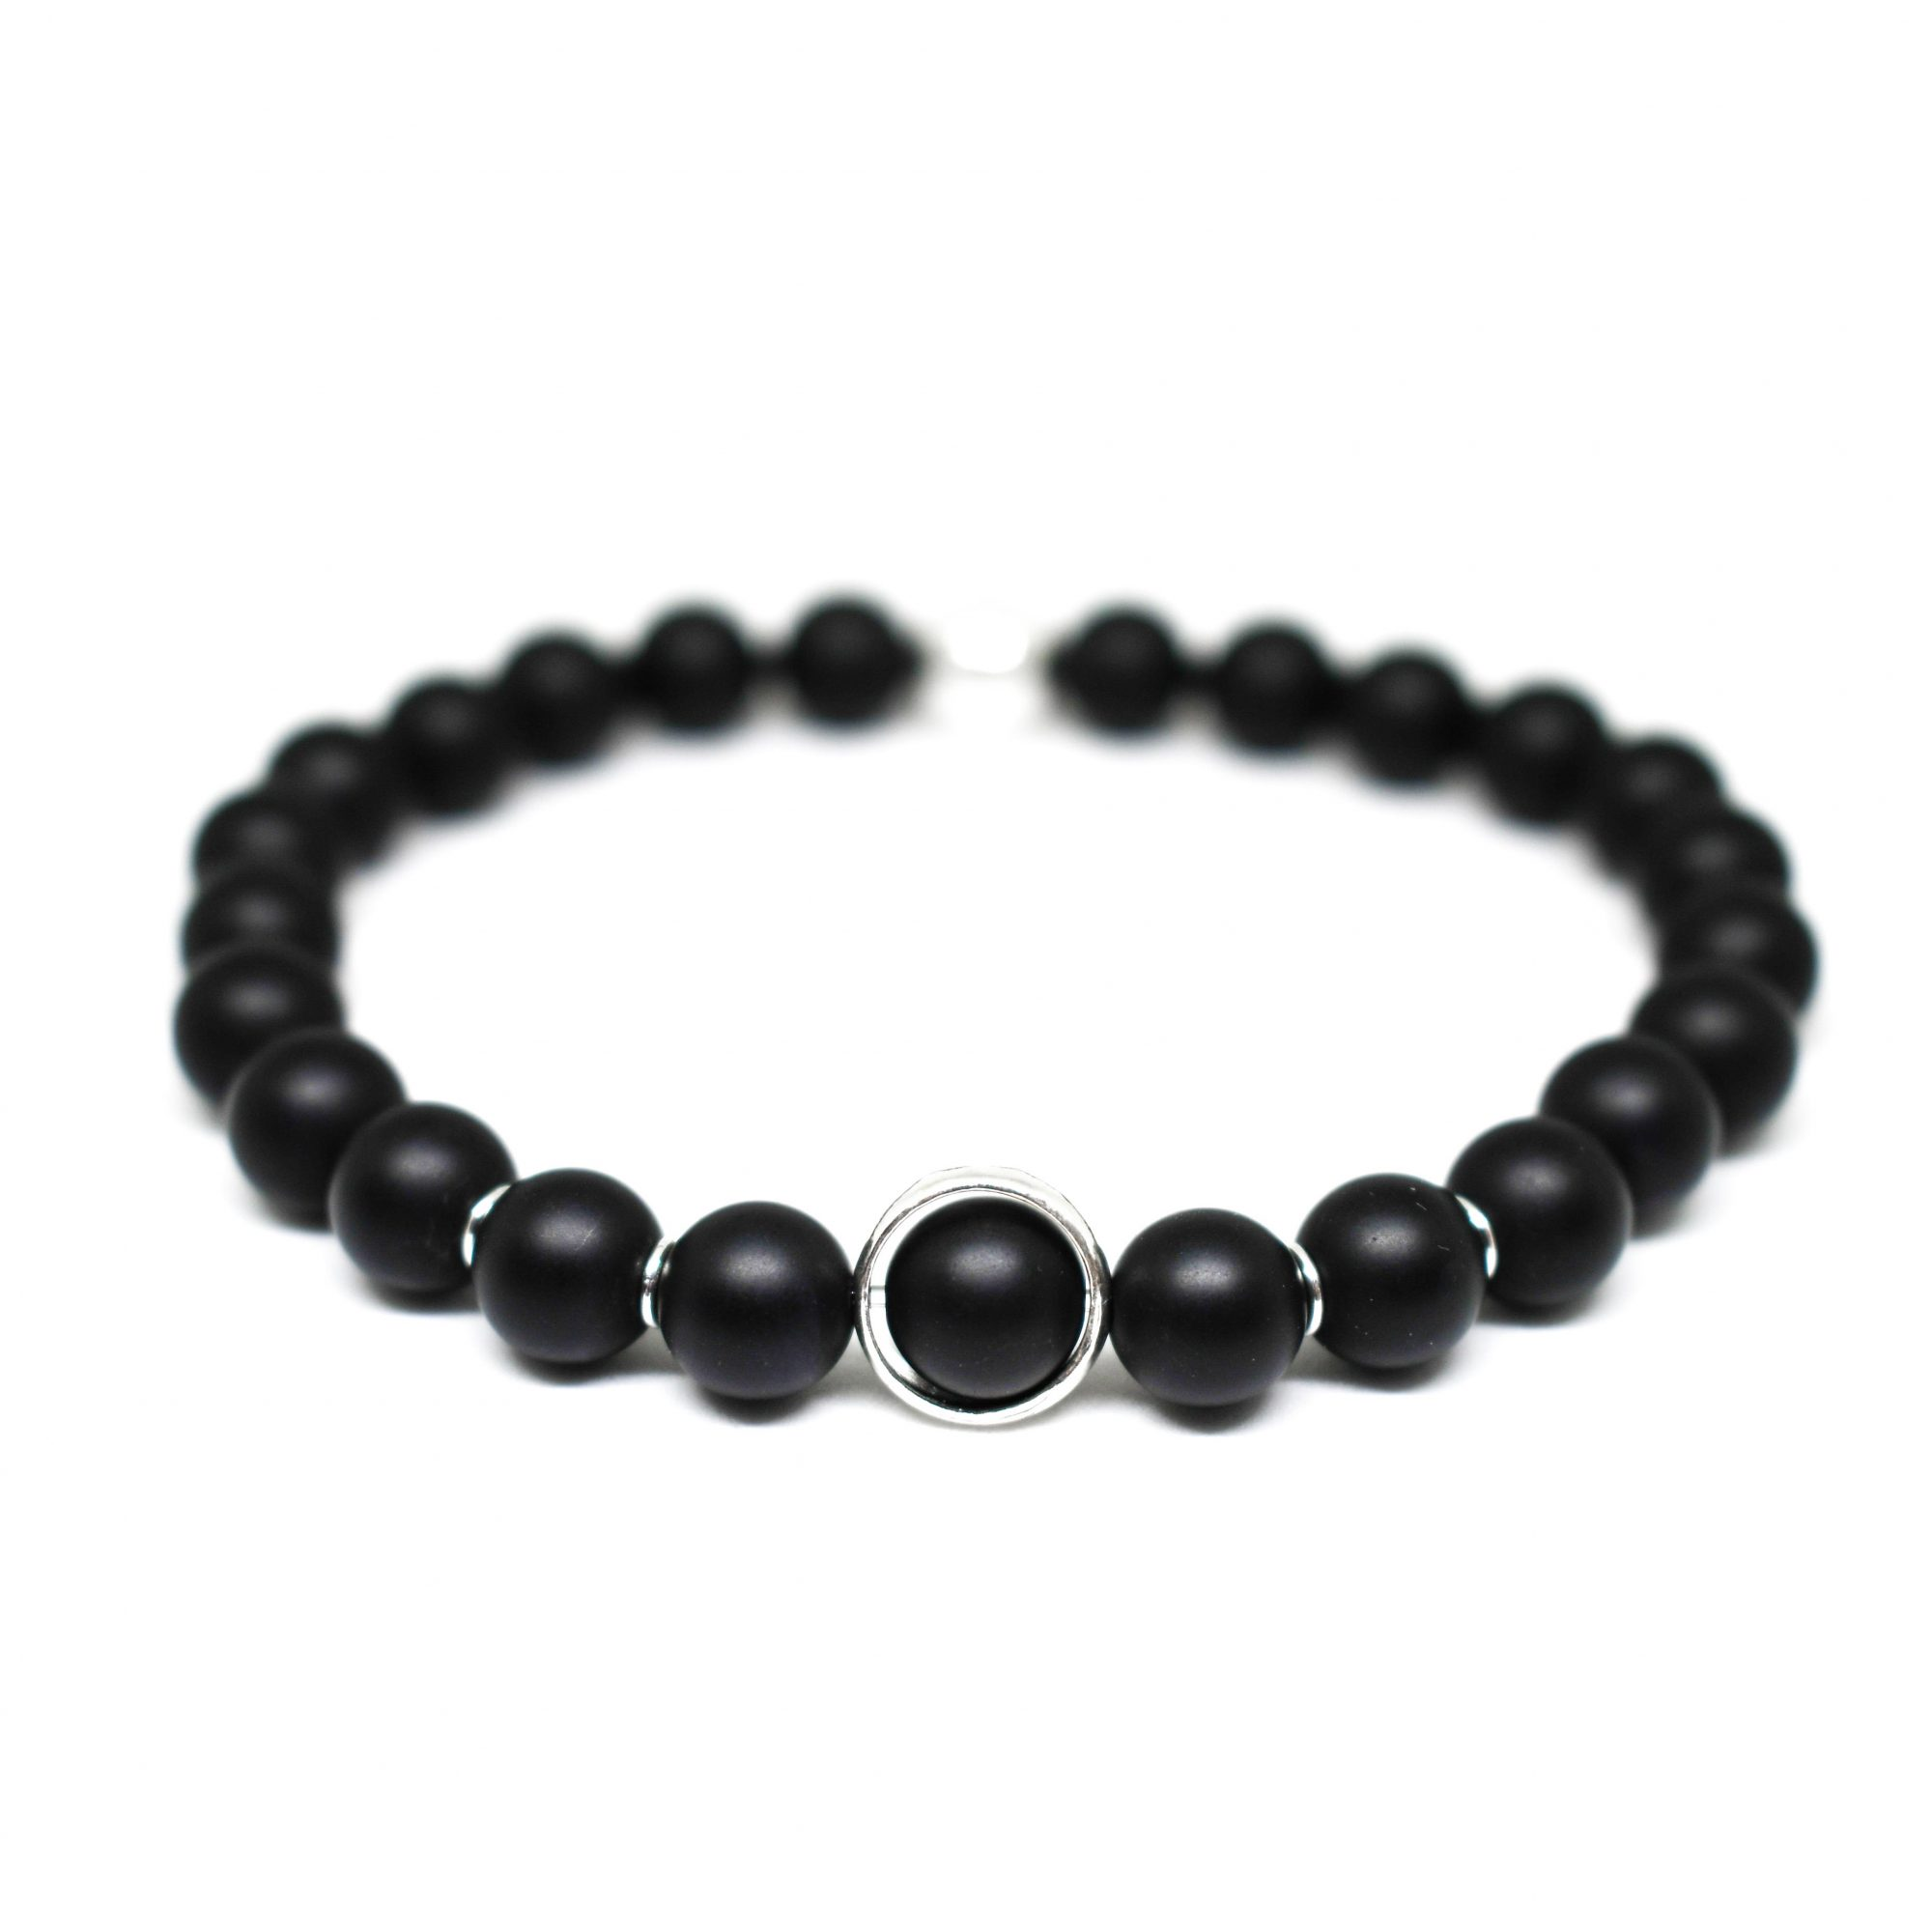 bullet onyx company mean bracelet fit products black matte clothing mahogany jasper